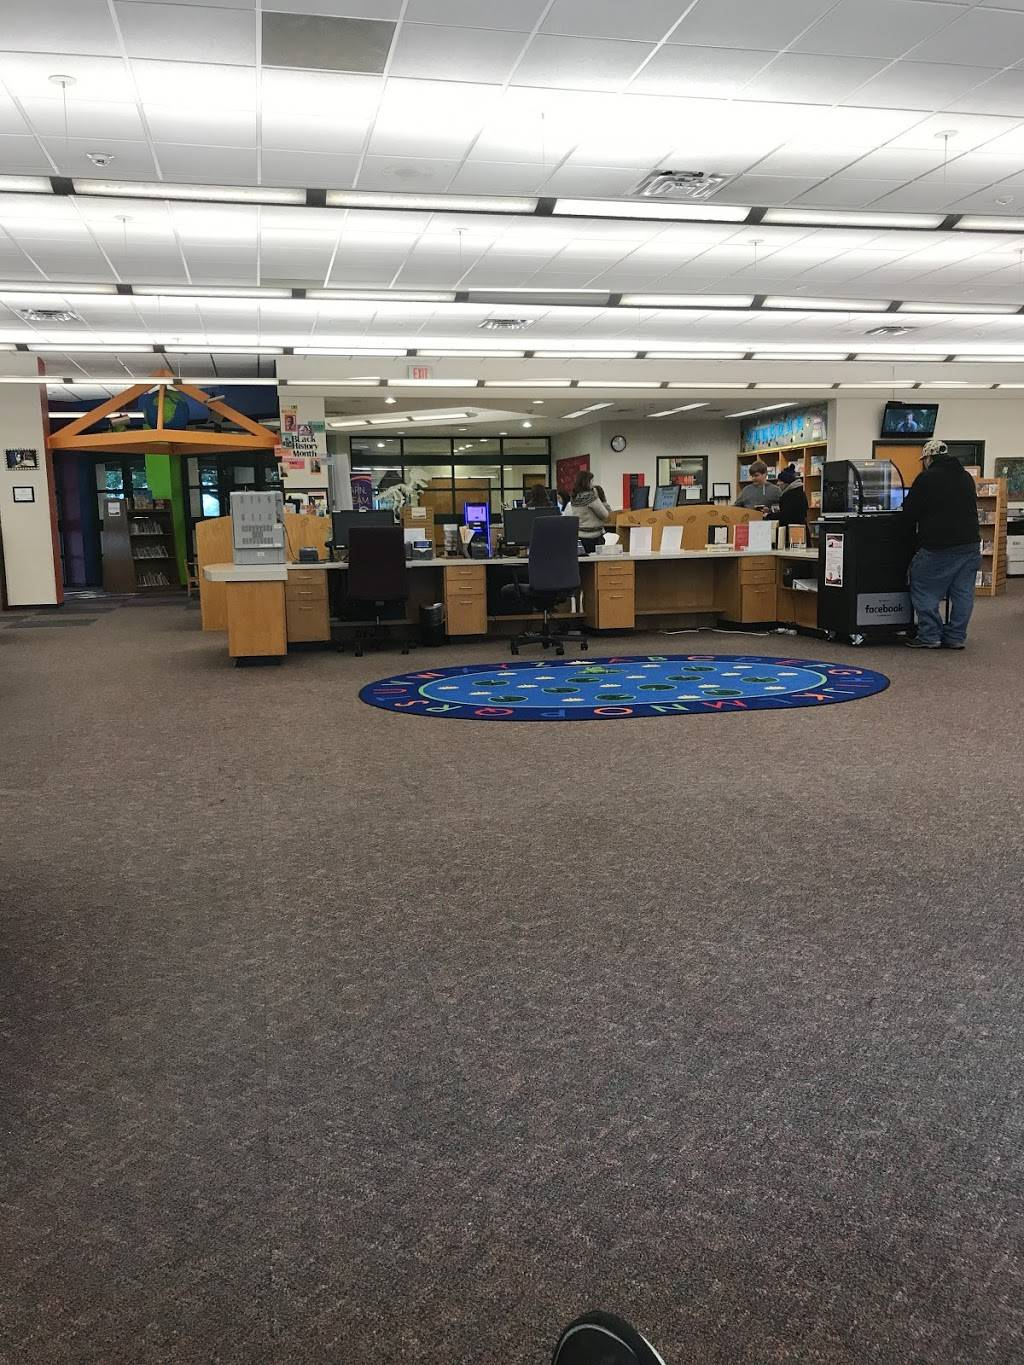 Fort Worth Public Library - Summerglen - library  | Photo 5 of 9 | Address: 4205 Basswood Blvd, Fort Worth, TX 76137, USA | Phone: (817) 392-5970